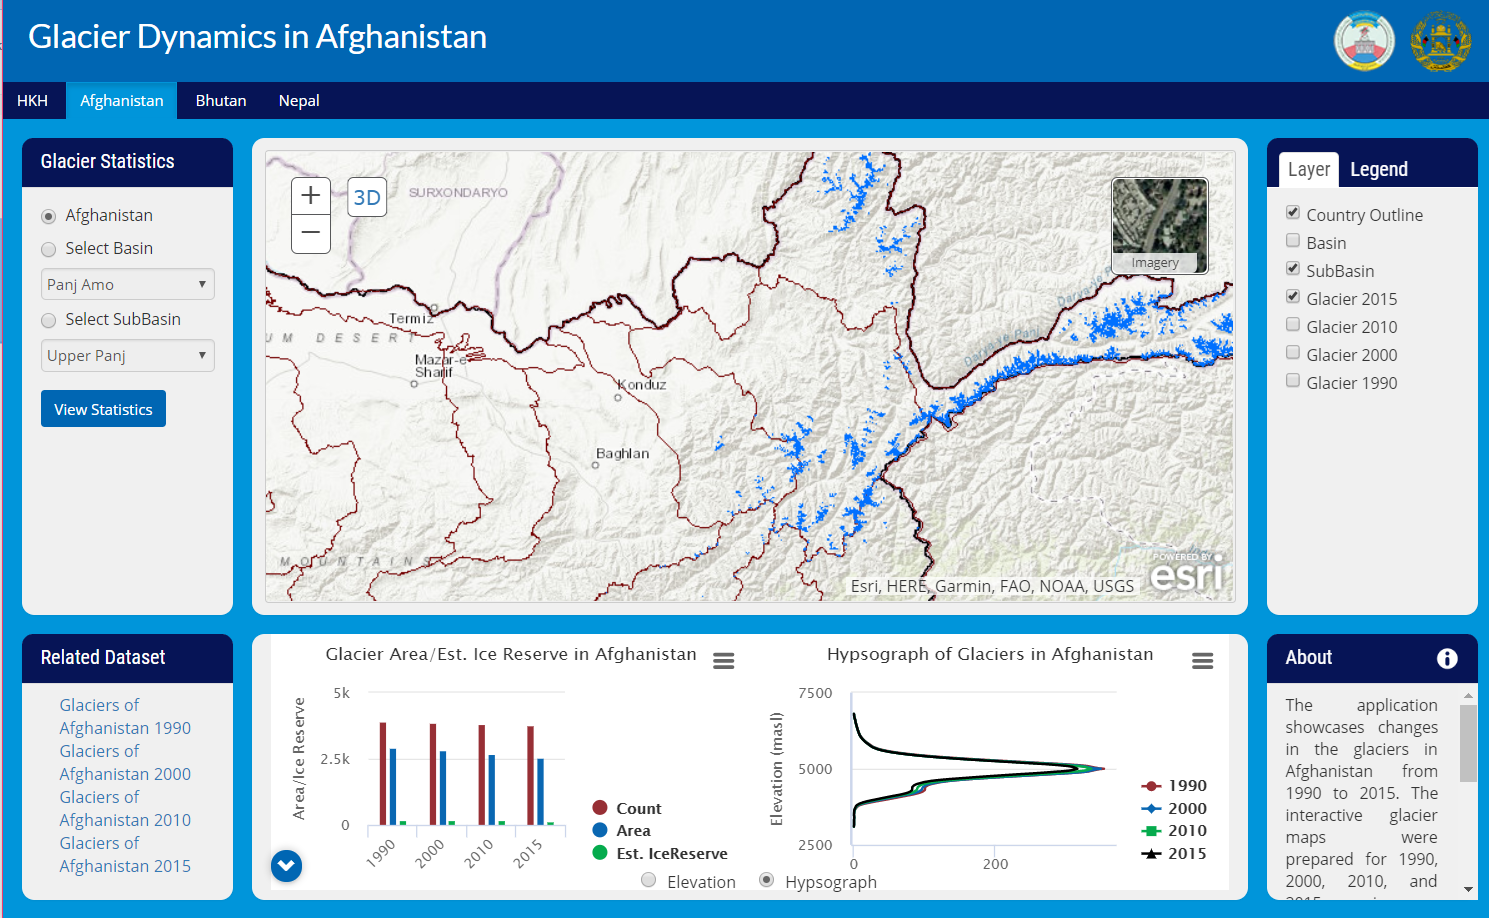 ICIMOD has also developed a glacier dynamics application for Afghanistan that provides an interactive visualisation of the database online.